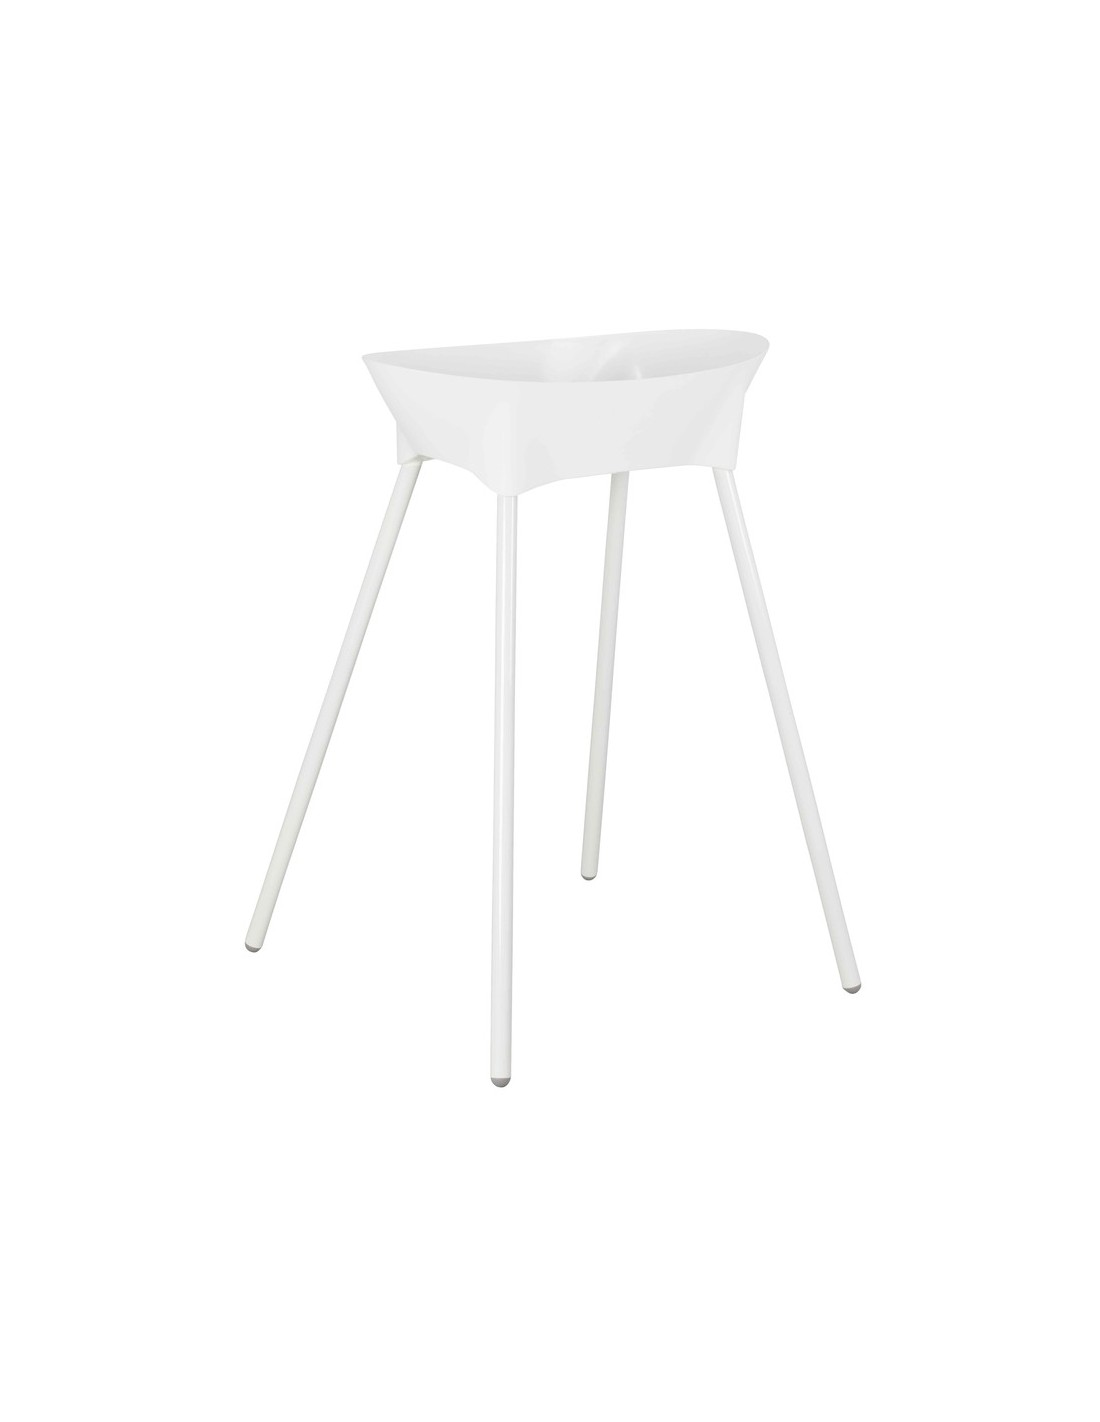 Luma Bath Stand For Babies In Snow White Alex And Co